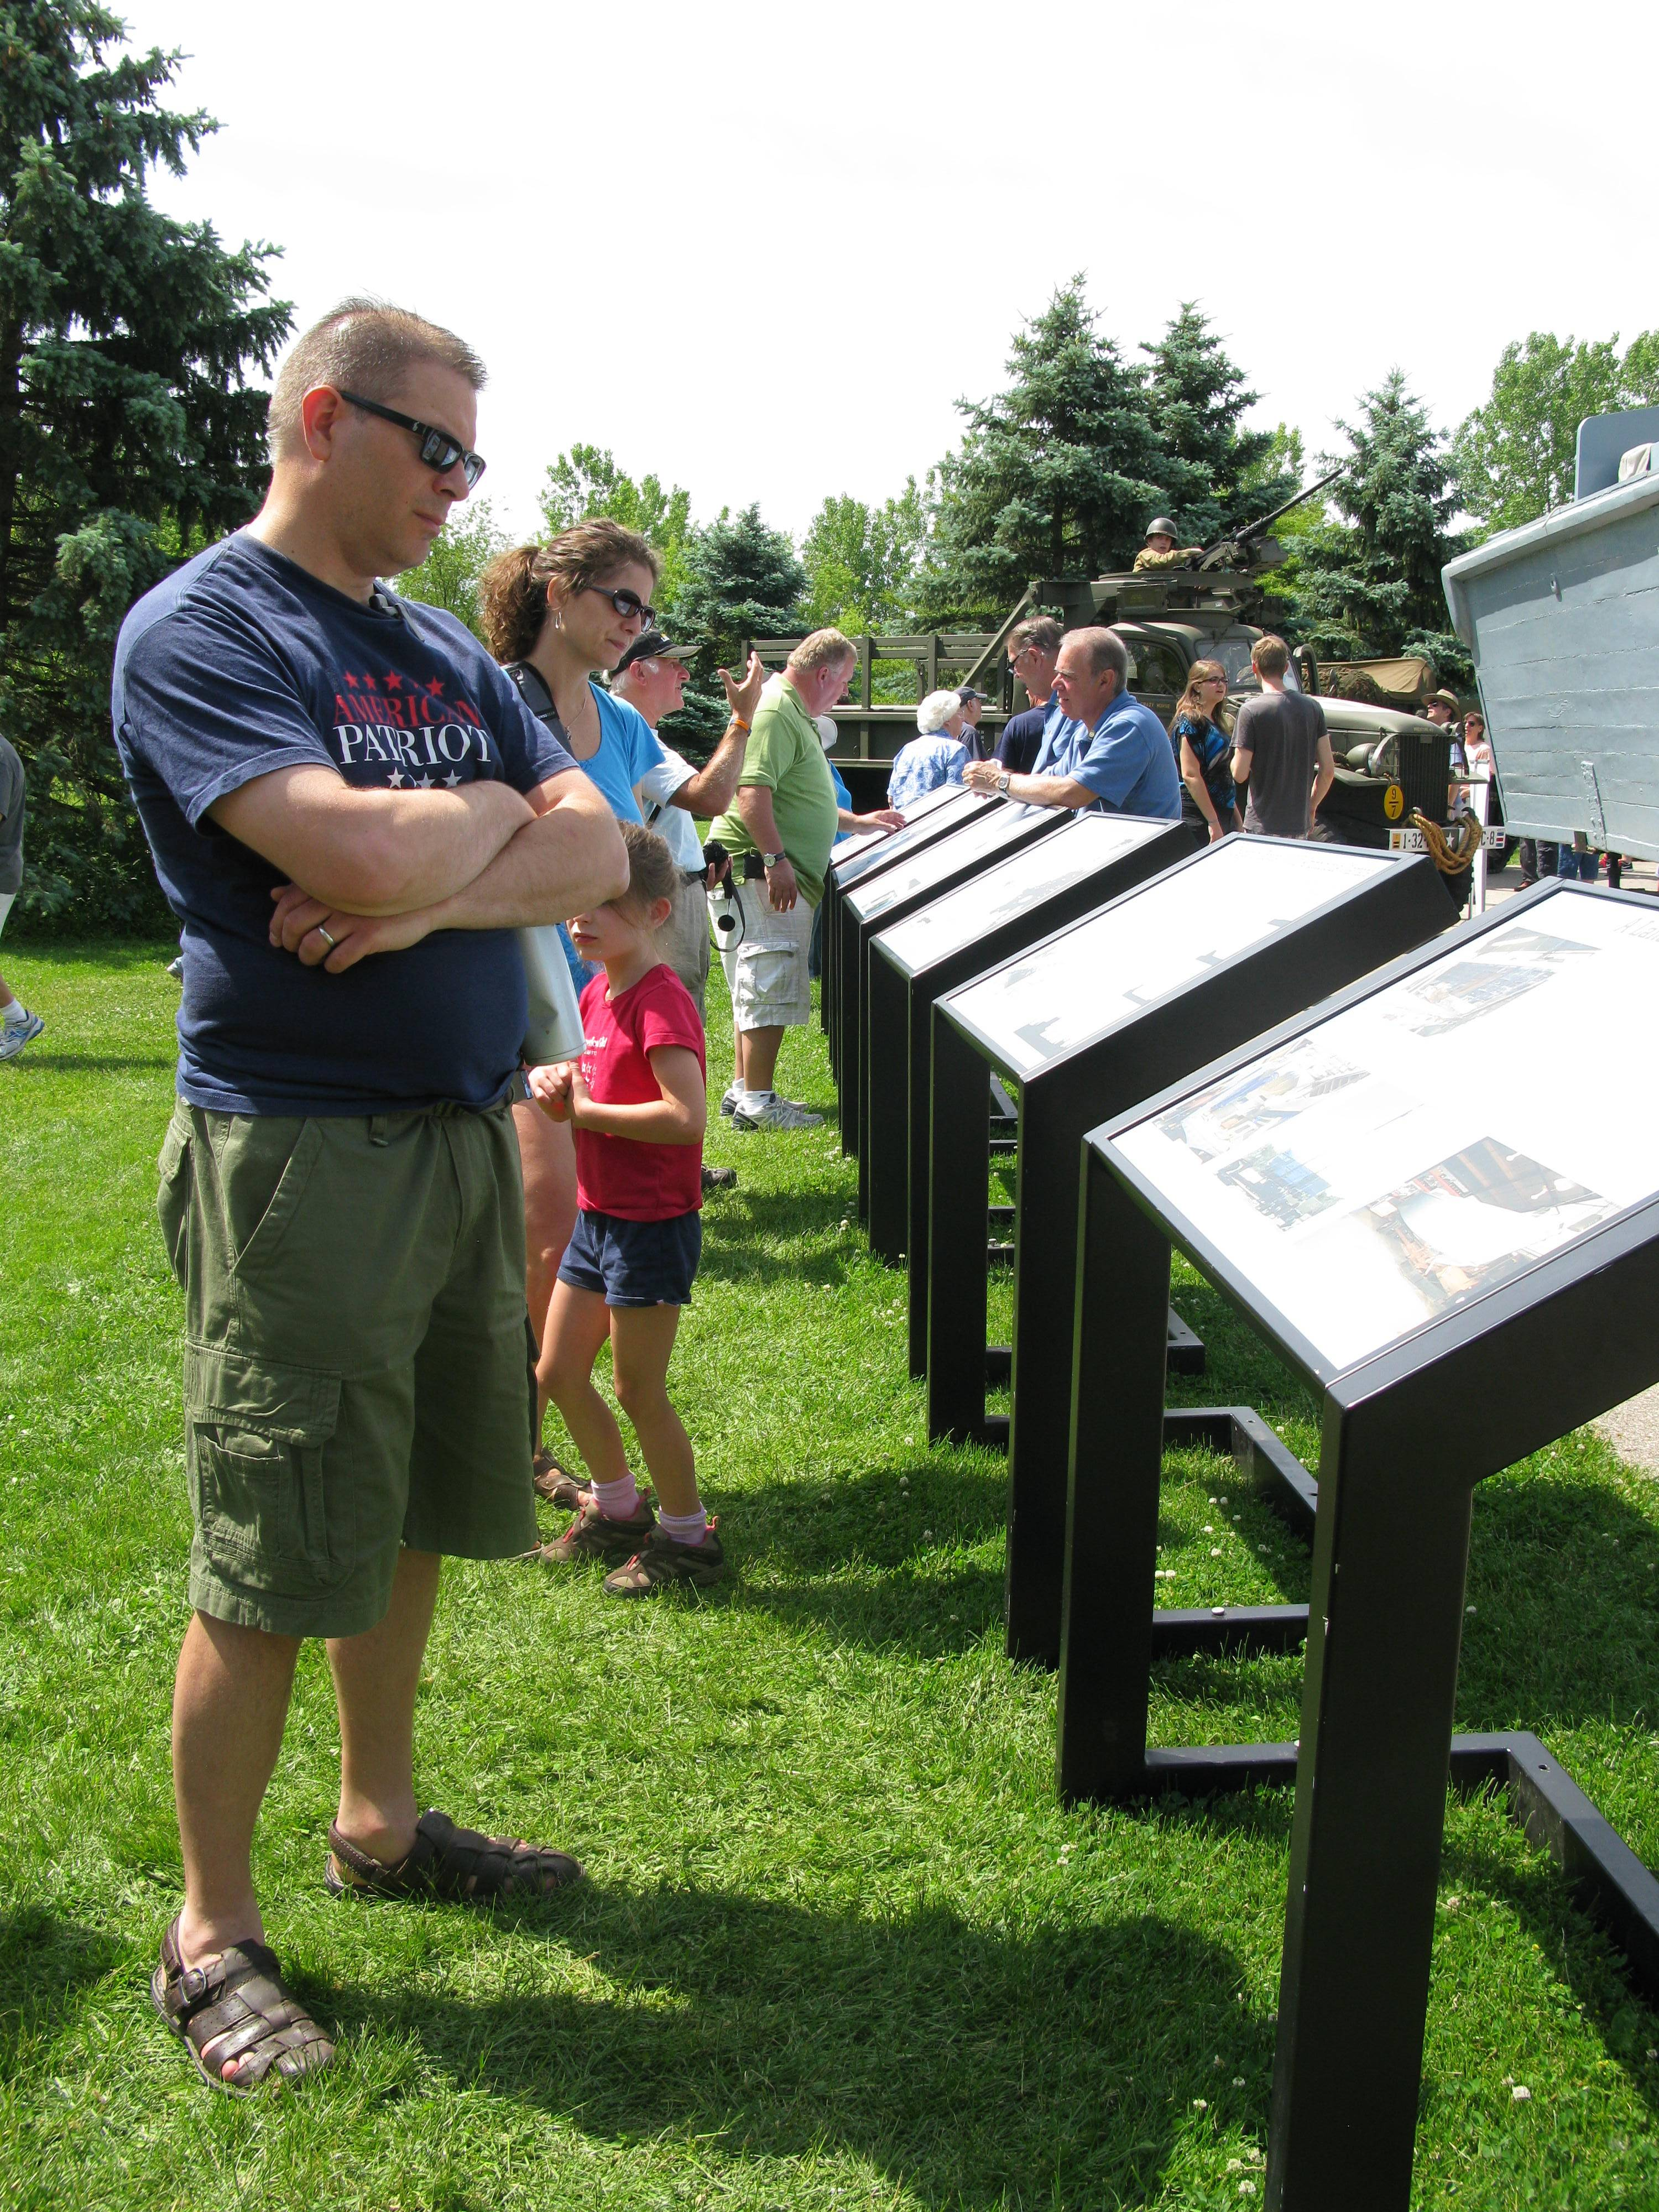 Kevin Oleniczak of Wheaton and wife, Sheryl, in the background, read up on war history Saturday at Cantigny Park in Wheaton. Dozens of visitors, including many World War II veterans, marked the 70th anniversary of D-Day, the Allied invasion of France, Saturday at the park.